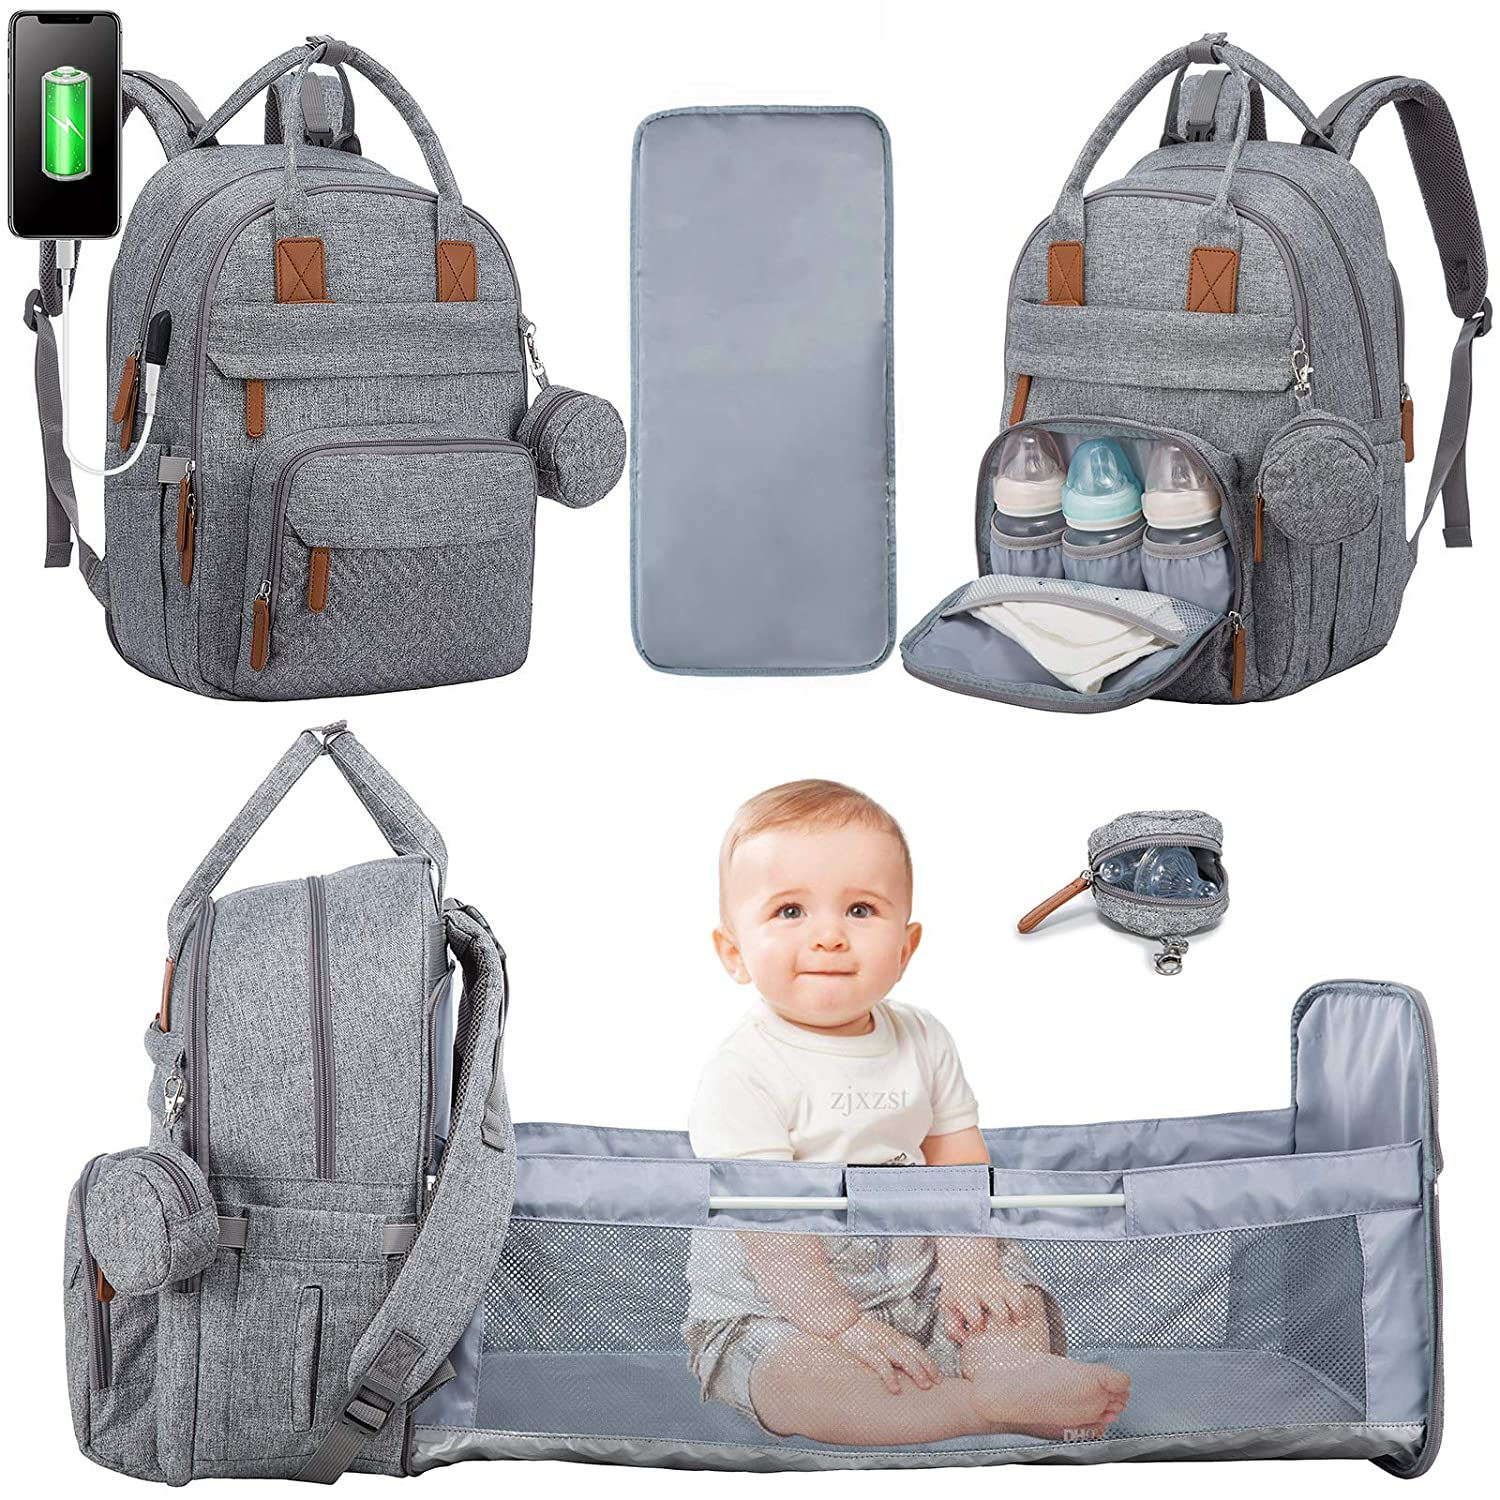 Diaper Bag Backpack with Changing Station,Travel Bassinet,Pacifier Case Baby Bag Backpack for Girls Boys,Mommy Bag with USB Charging Port Unisex for Dad Mom